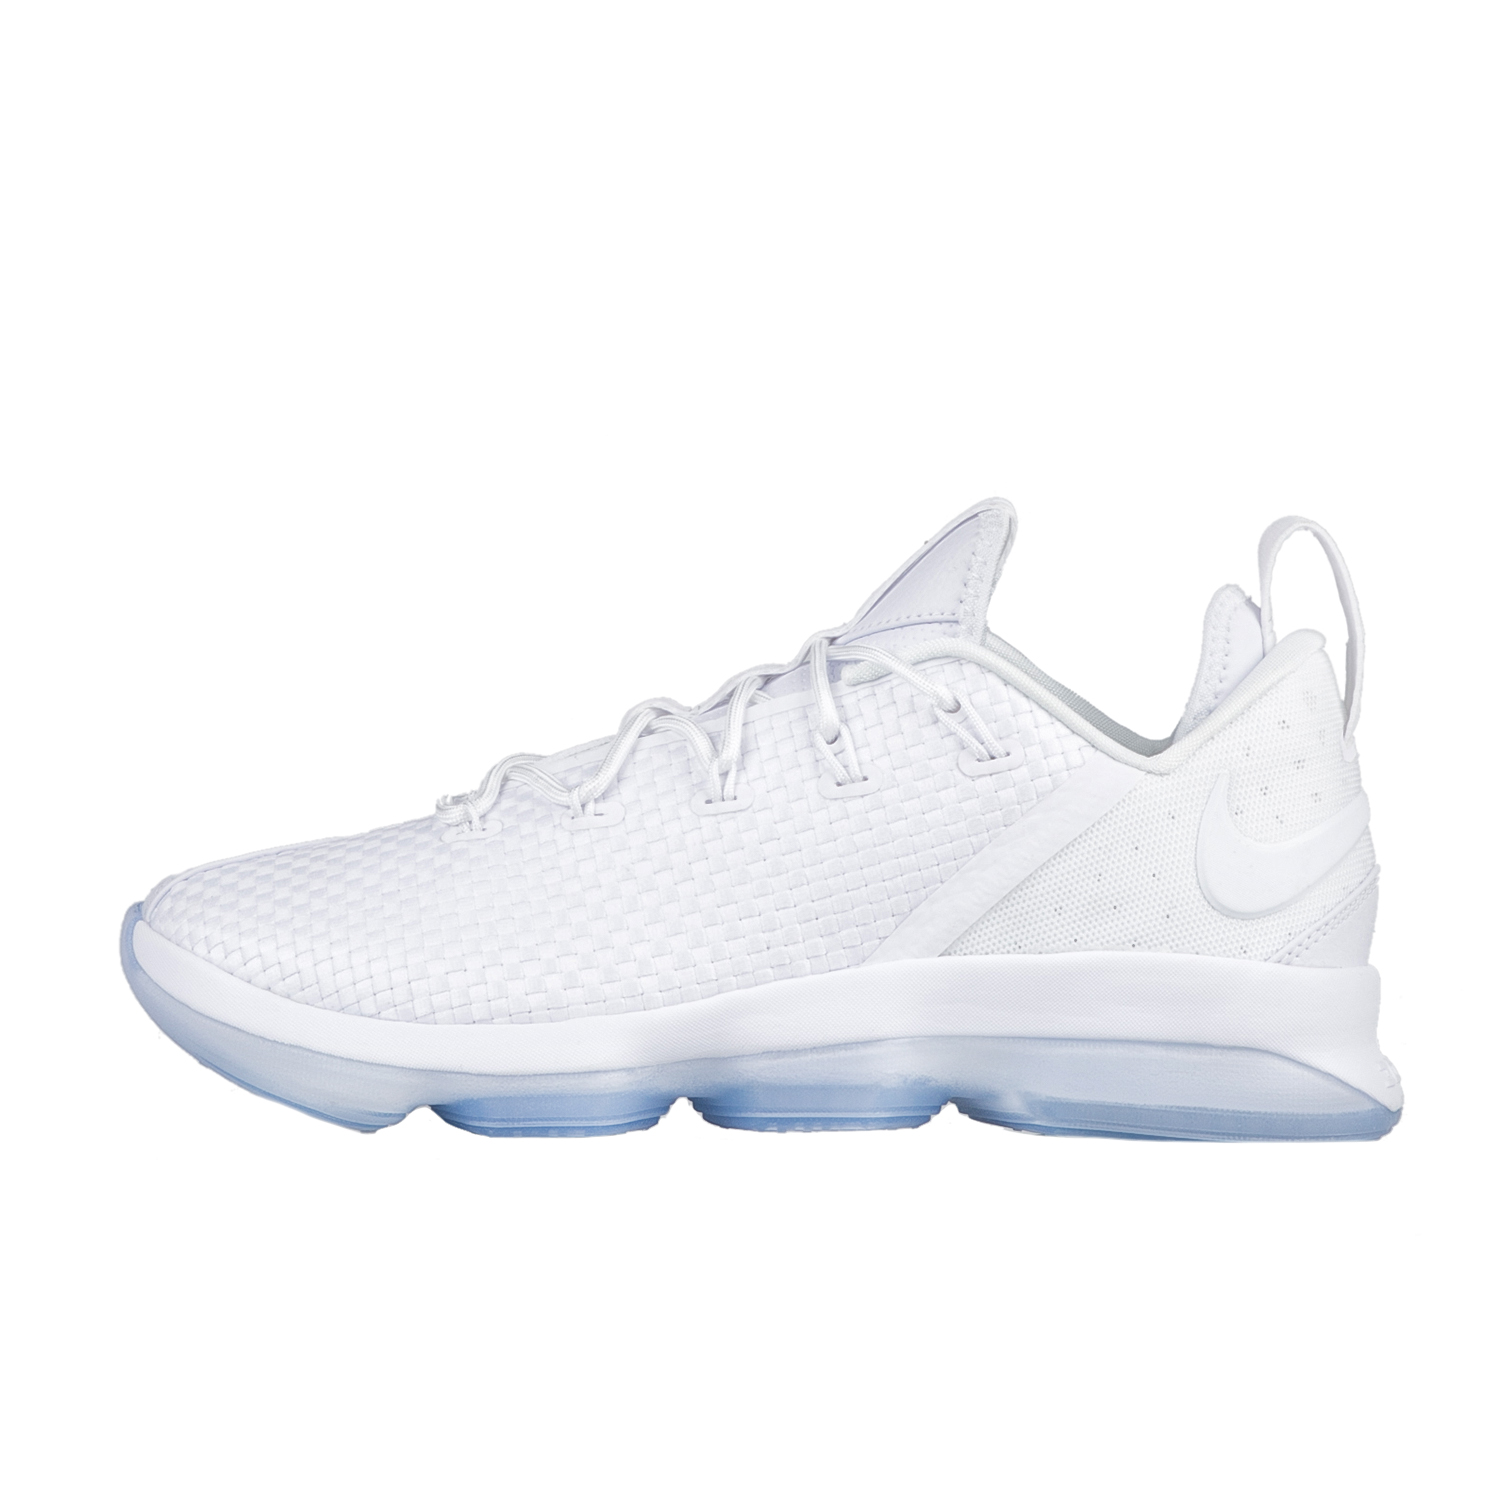 NIKE – Ανδρικά παπούτσια μπάσκετ NIKE DREAMCHASER 32 LOW λευκά